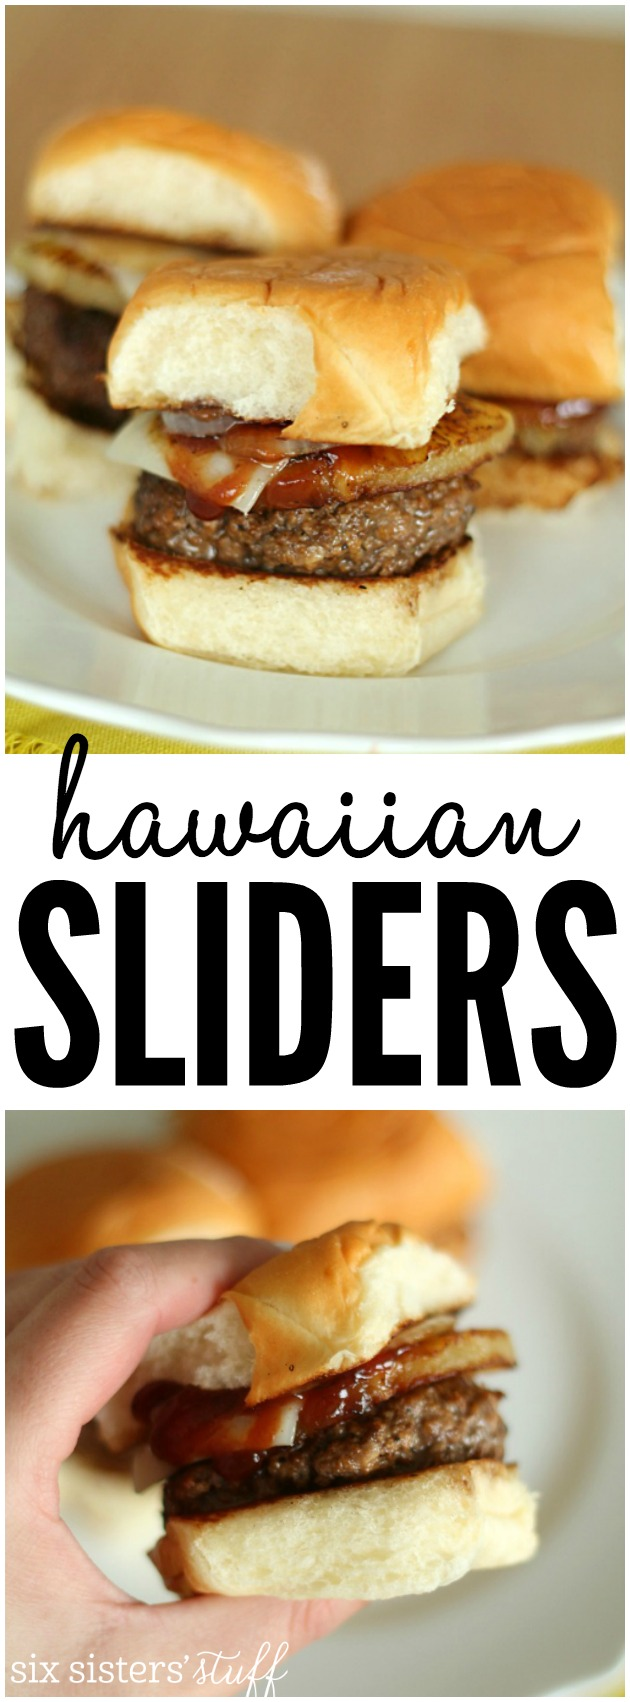 Delicious Hawaiian Hamburger Sliders from SixSistersStuff.com